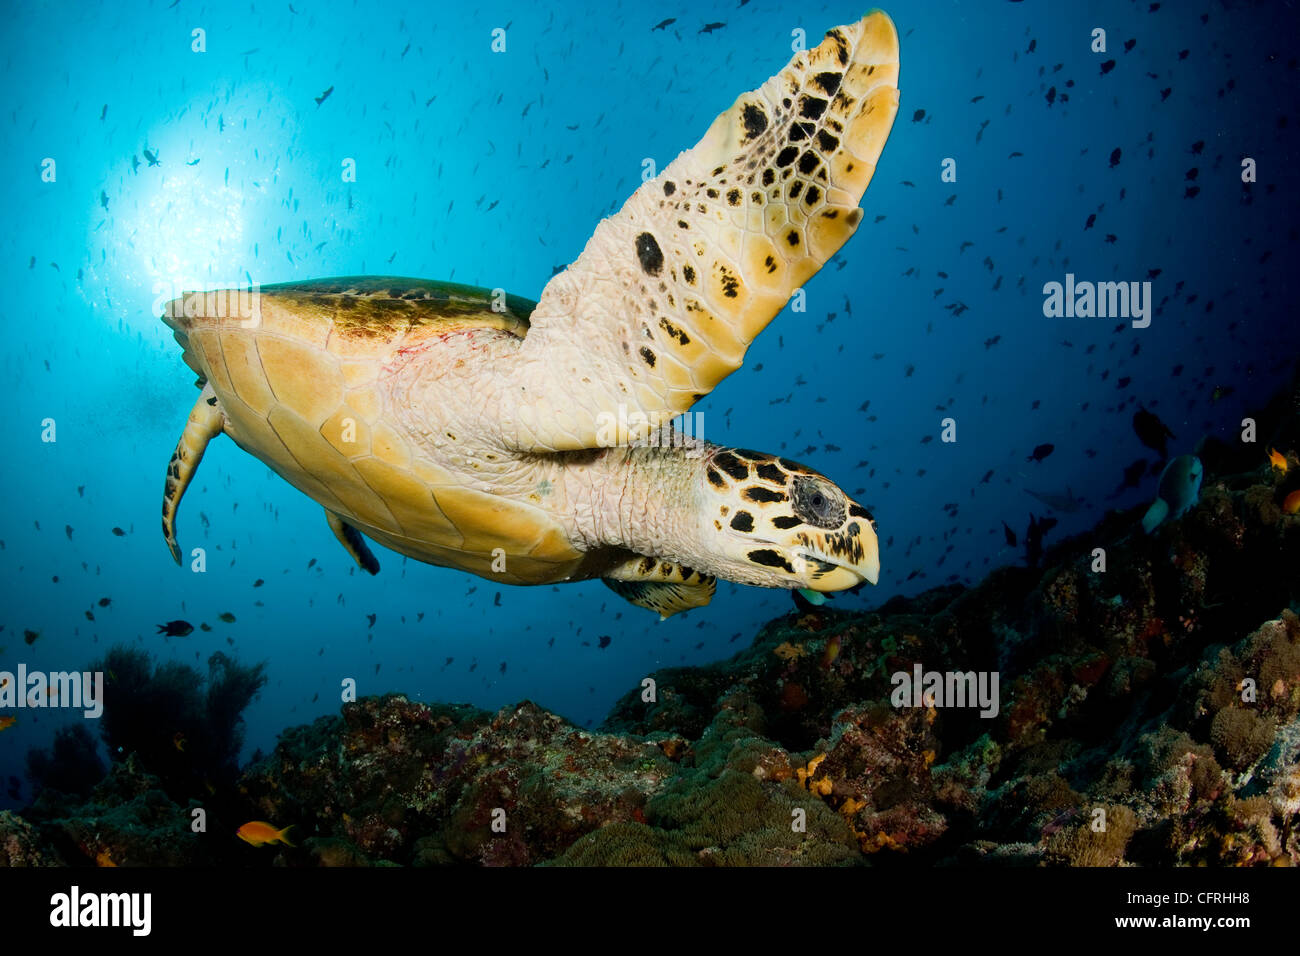 Hawksbill turtle, Critically endangered (IUCN), Maldives, Indian Ocean - Stock Image